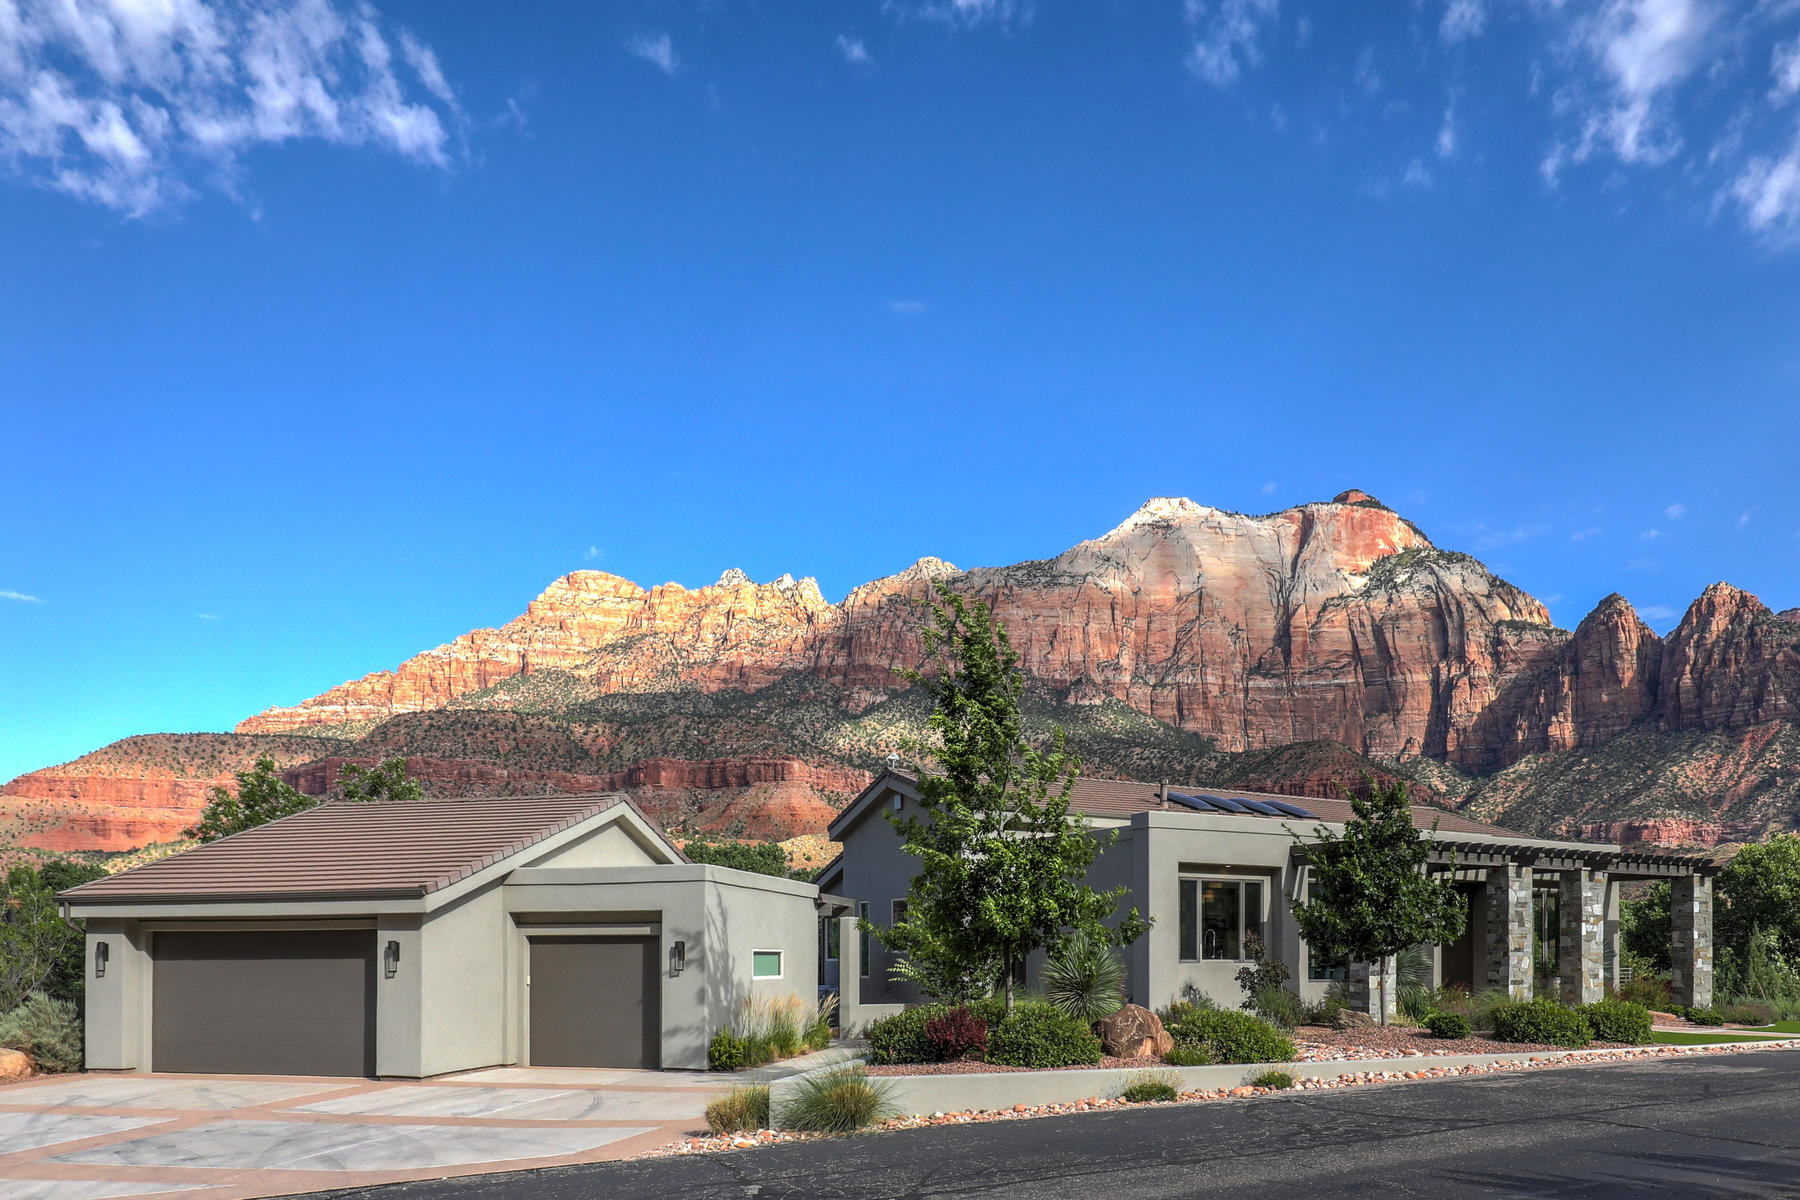 Single Family Homes for Active at Stunning Zion Riverside Showpiece 1215 Canyon Springs Drive Springdale, Utah 84767 United States